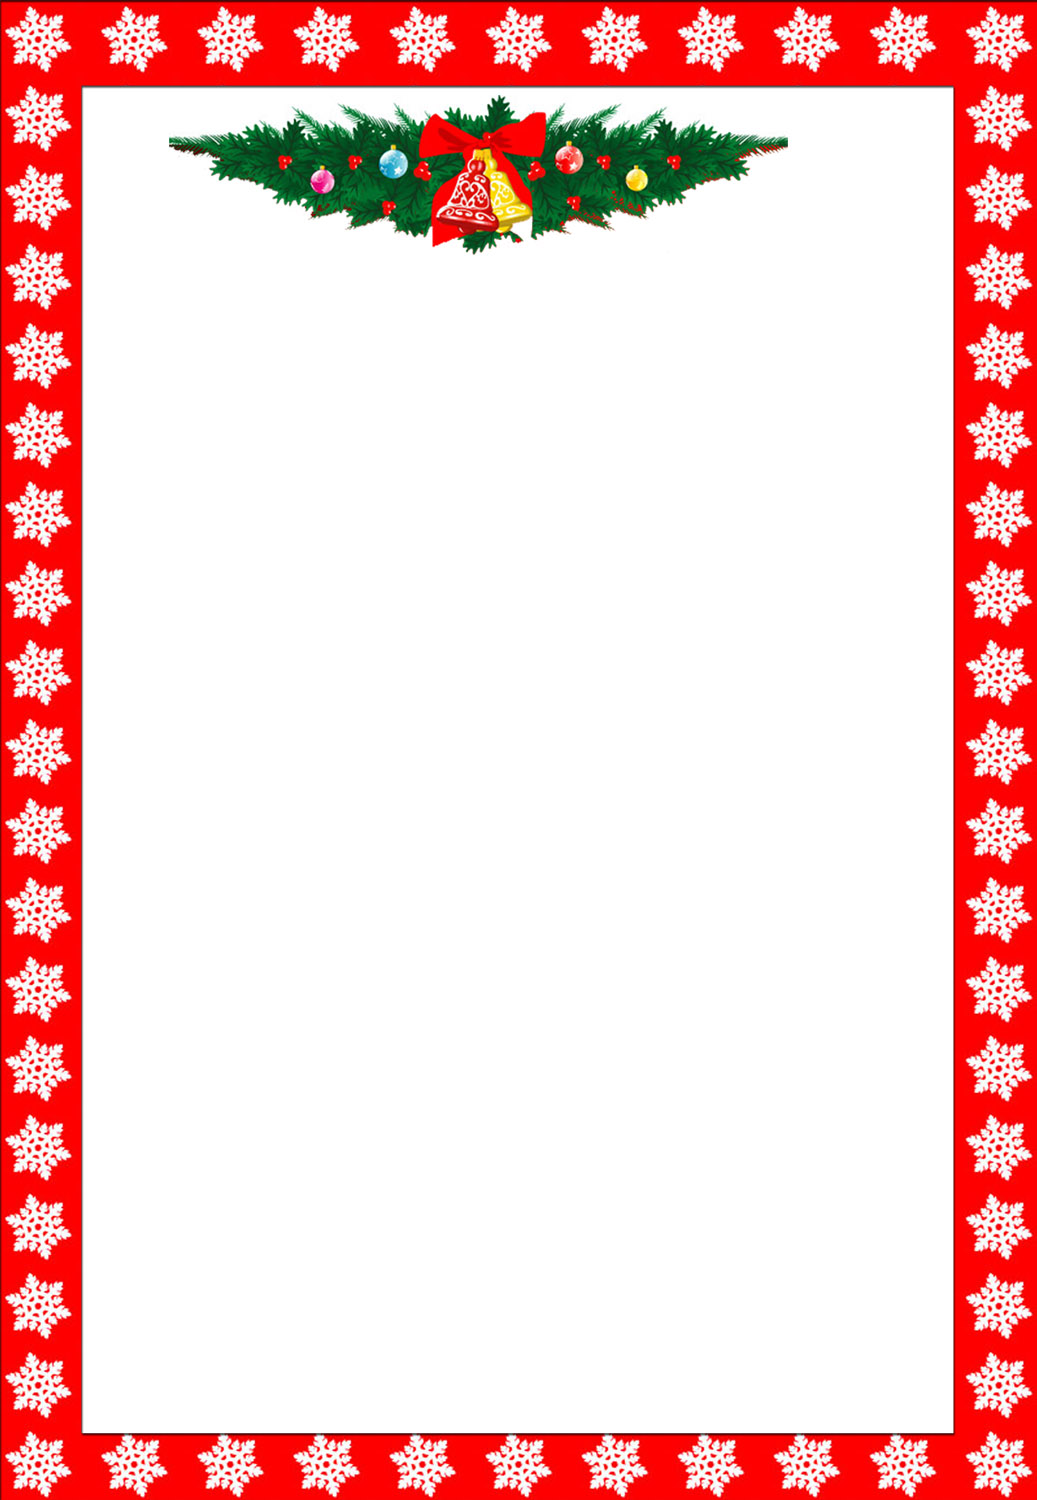 Free Christmas Borders 020511  Vector Clip Art   Free Clipart Images